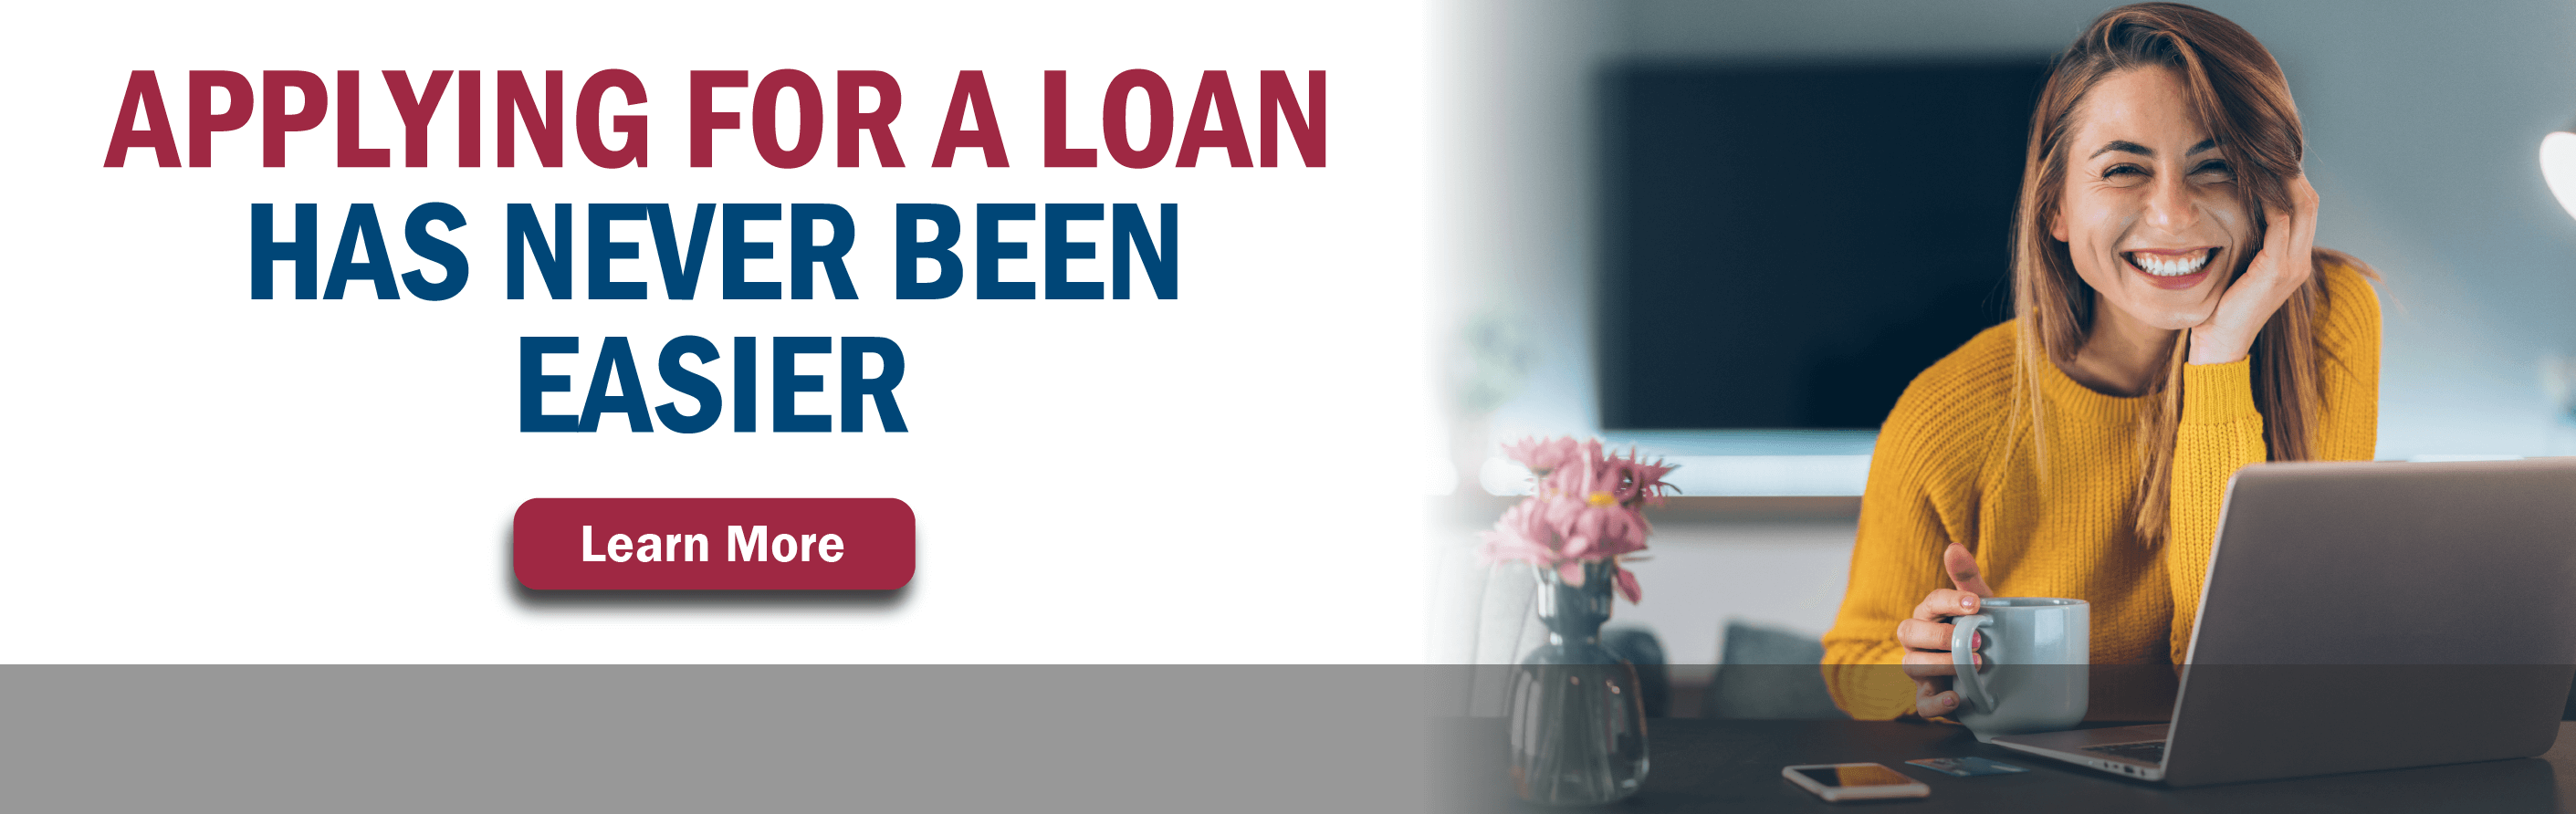 Applying for a loan has never been easier!